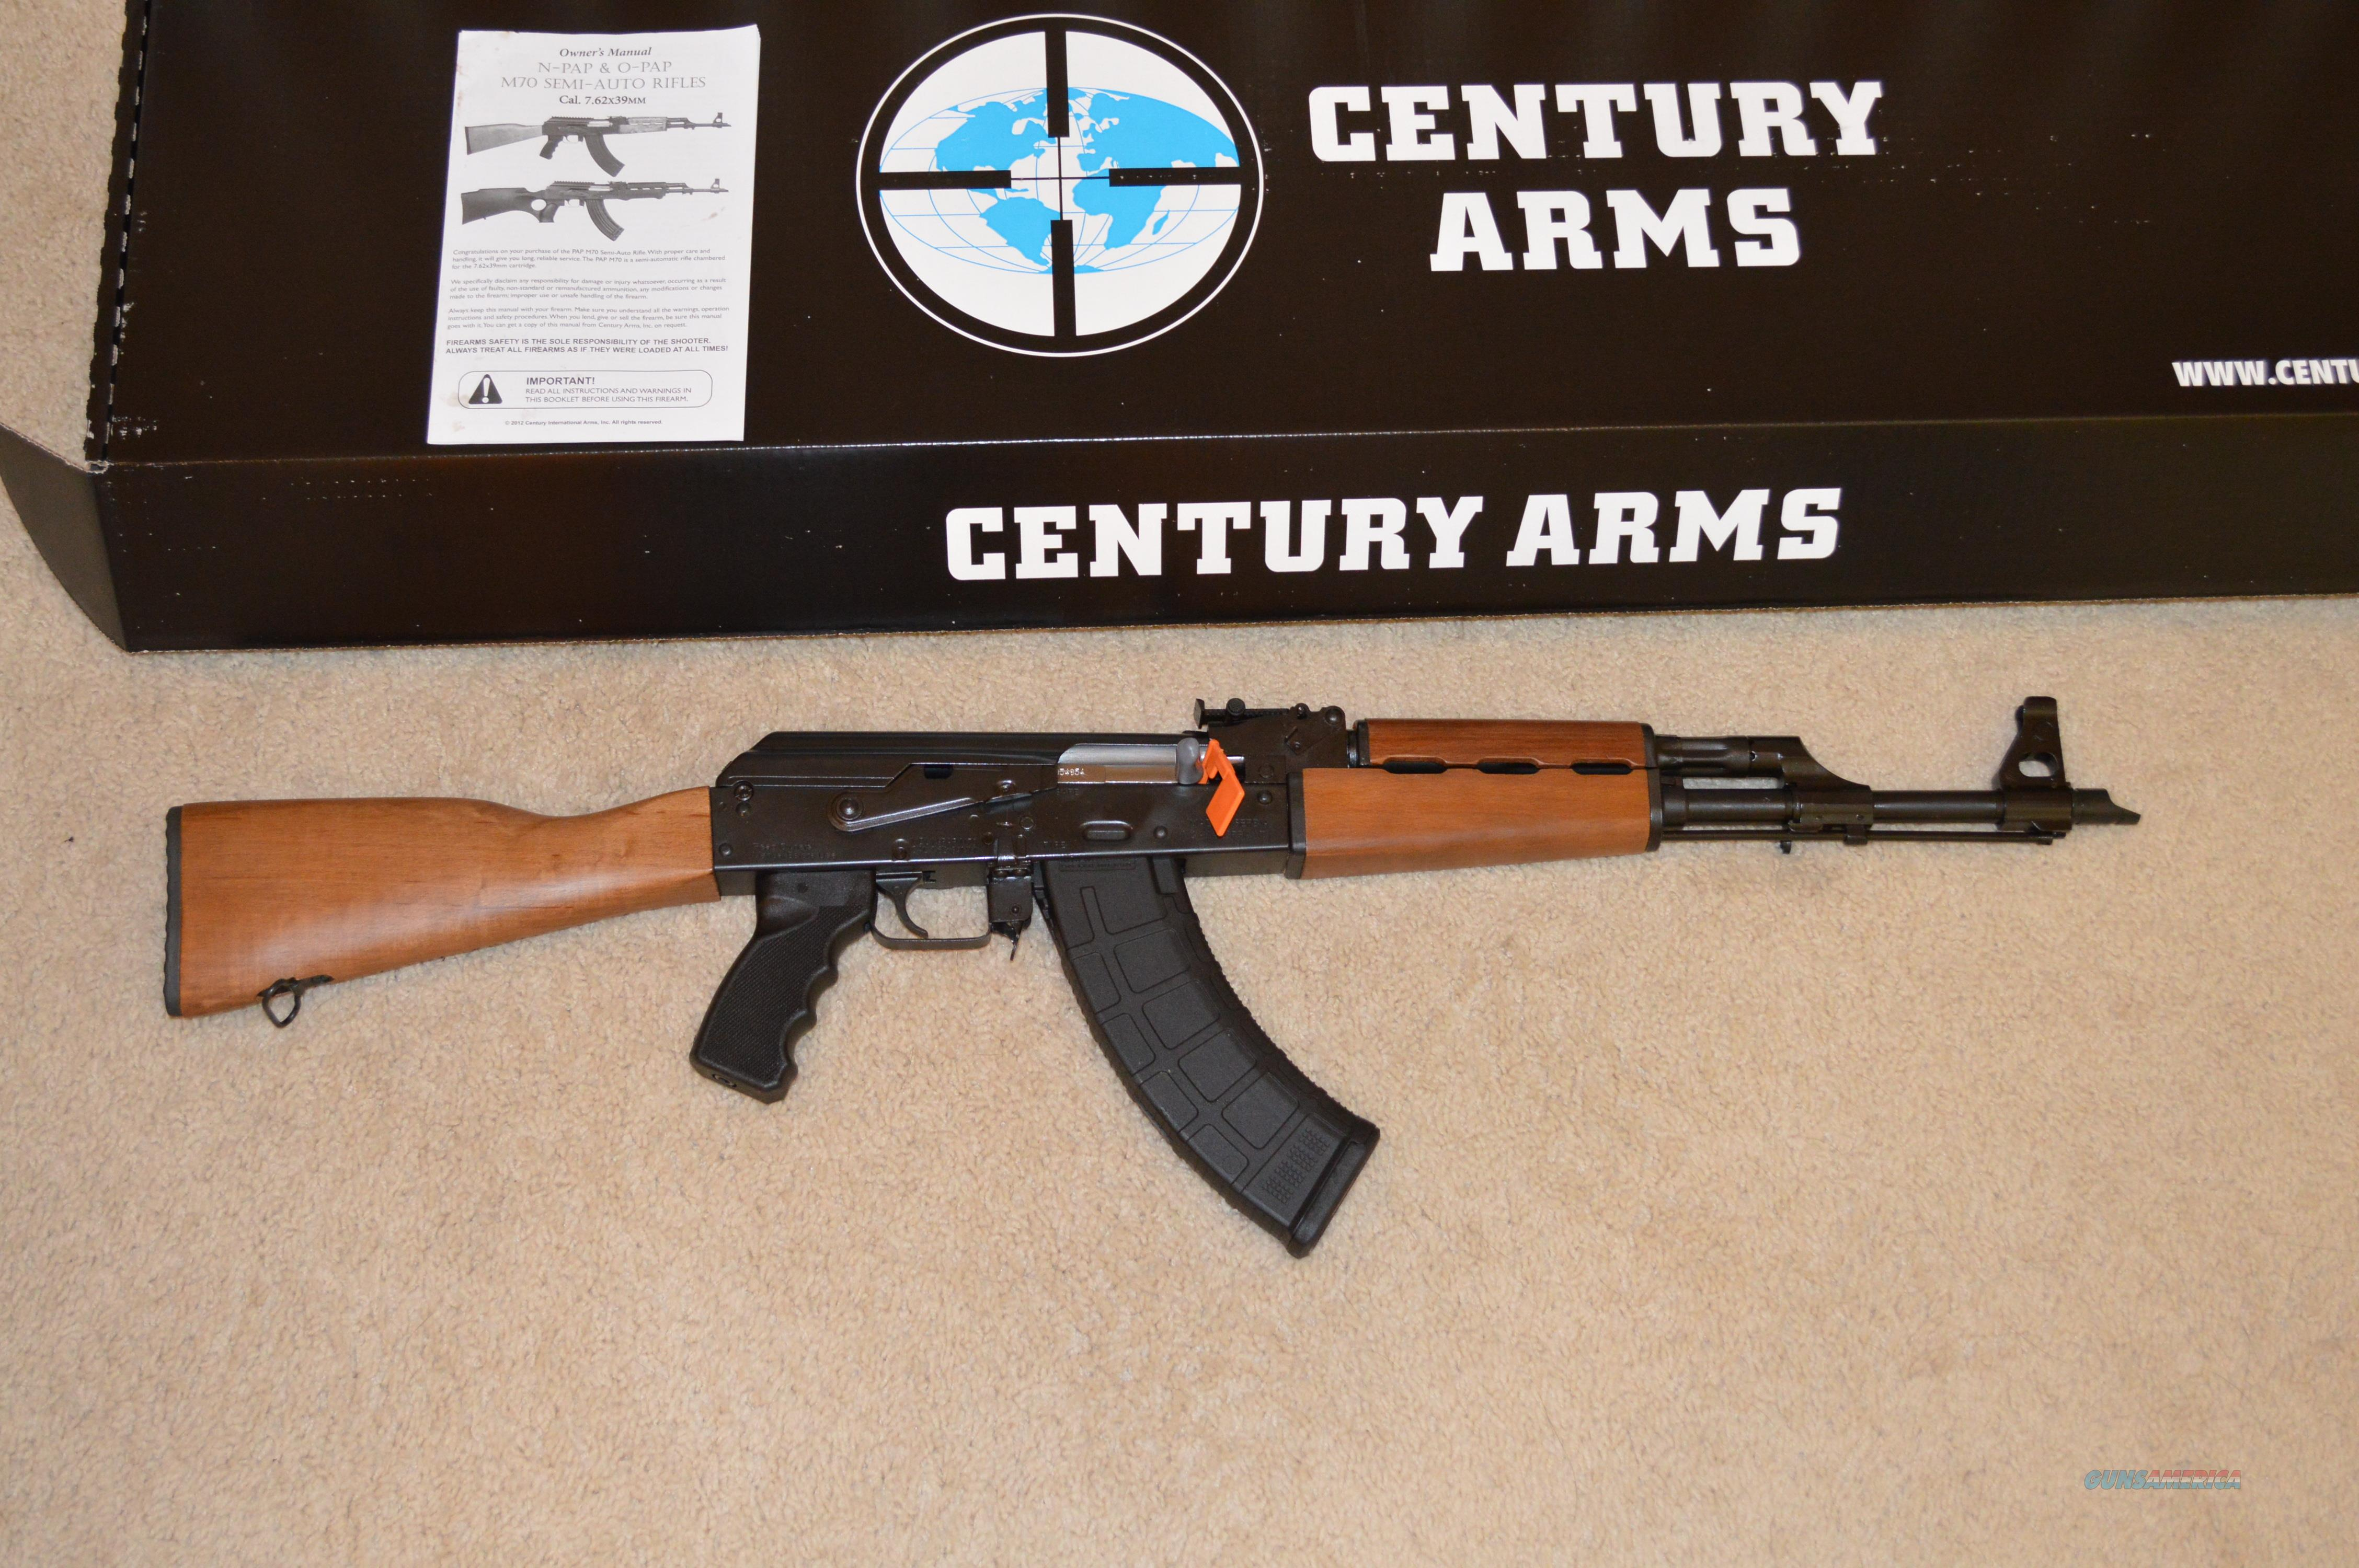 Ak ak 47 for sale by owner - 10591591 jpg